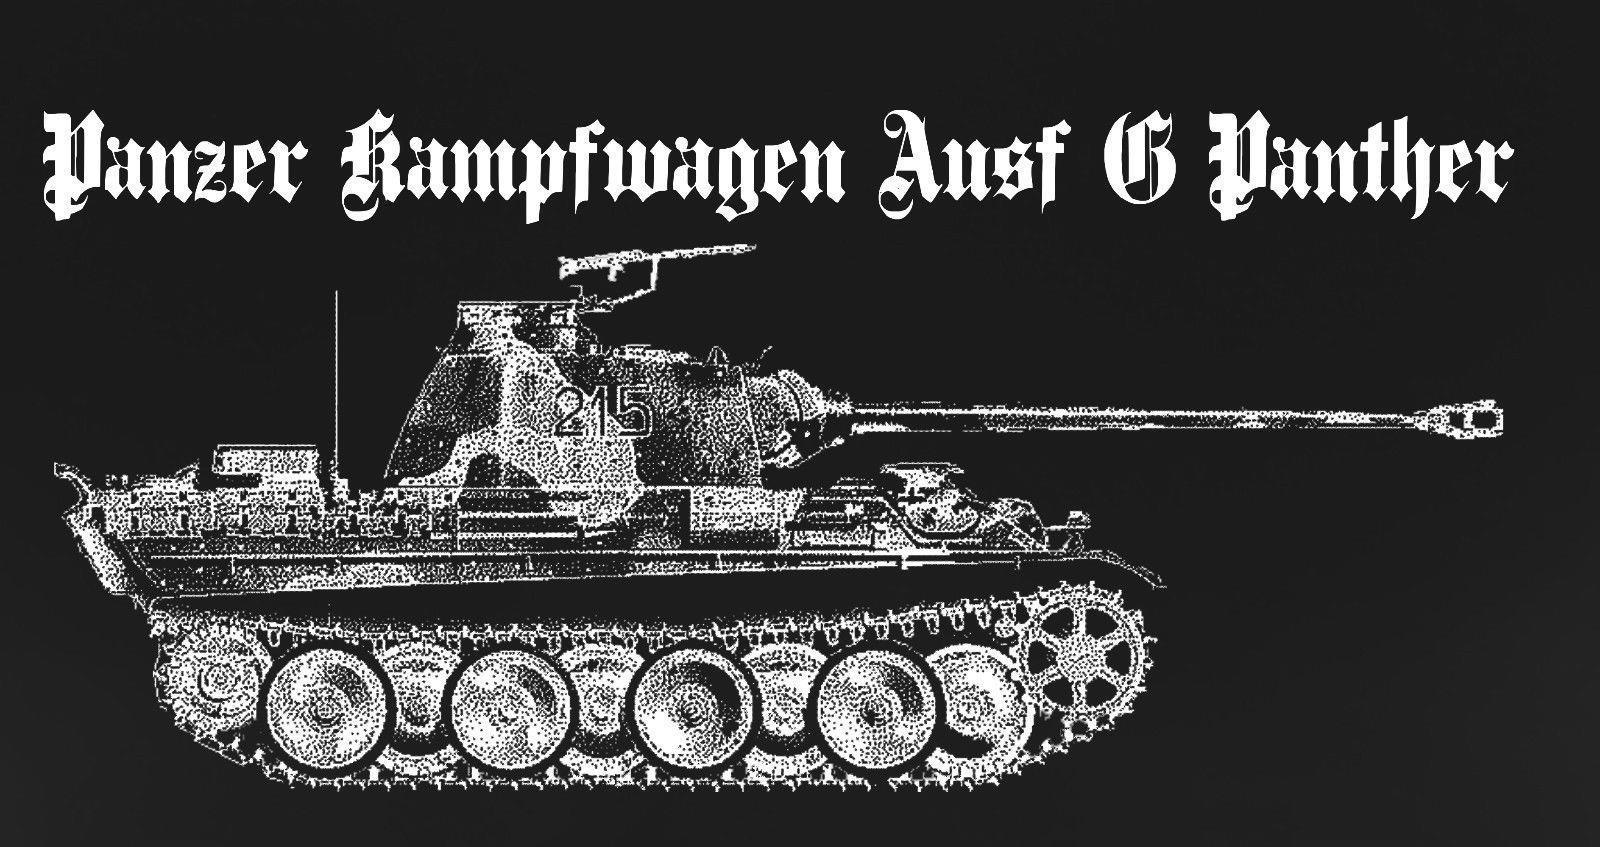 US $12 06 5% OFF|2019 Summer Hot Sale Men T shirt Panther Tank T shirt  Panzer WWII WW2 German Werhmacht Waffen ASL FURY-in T-Shirts from Men's